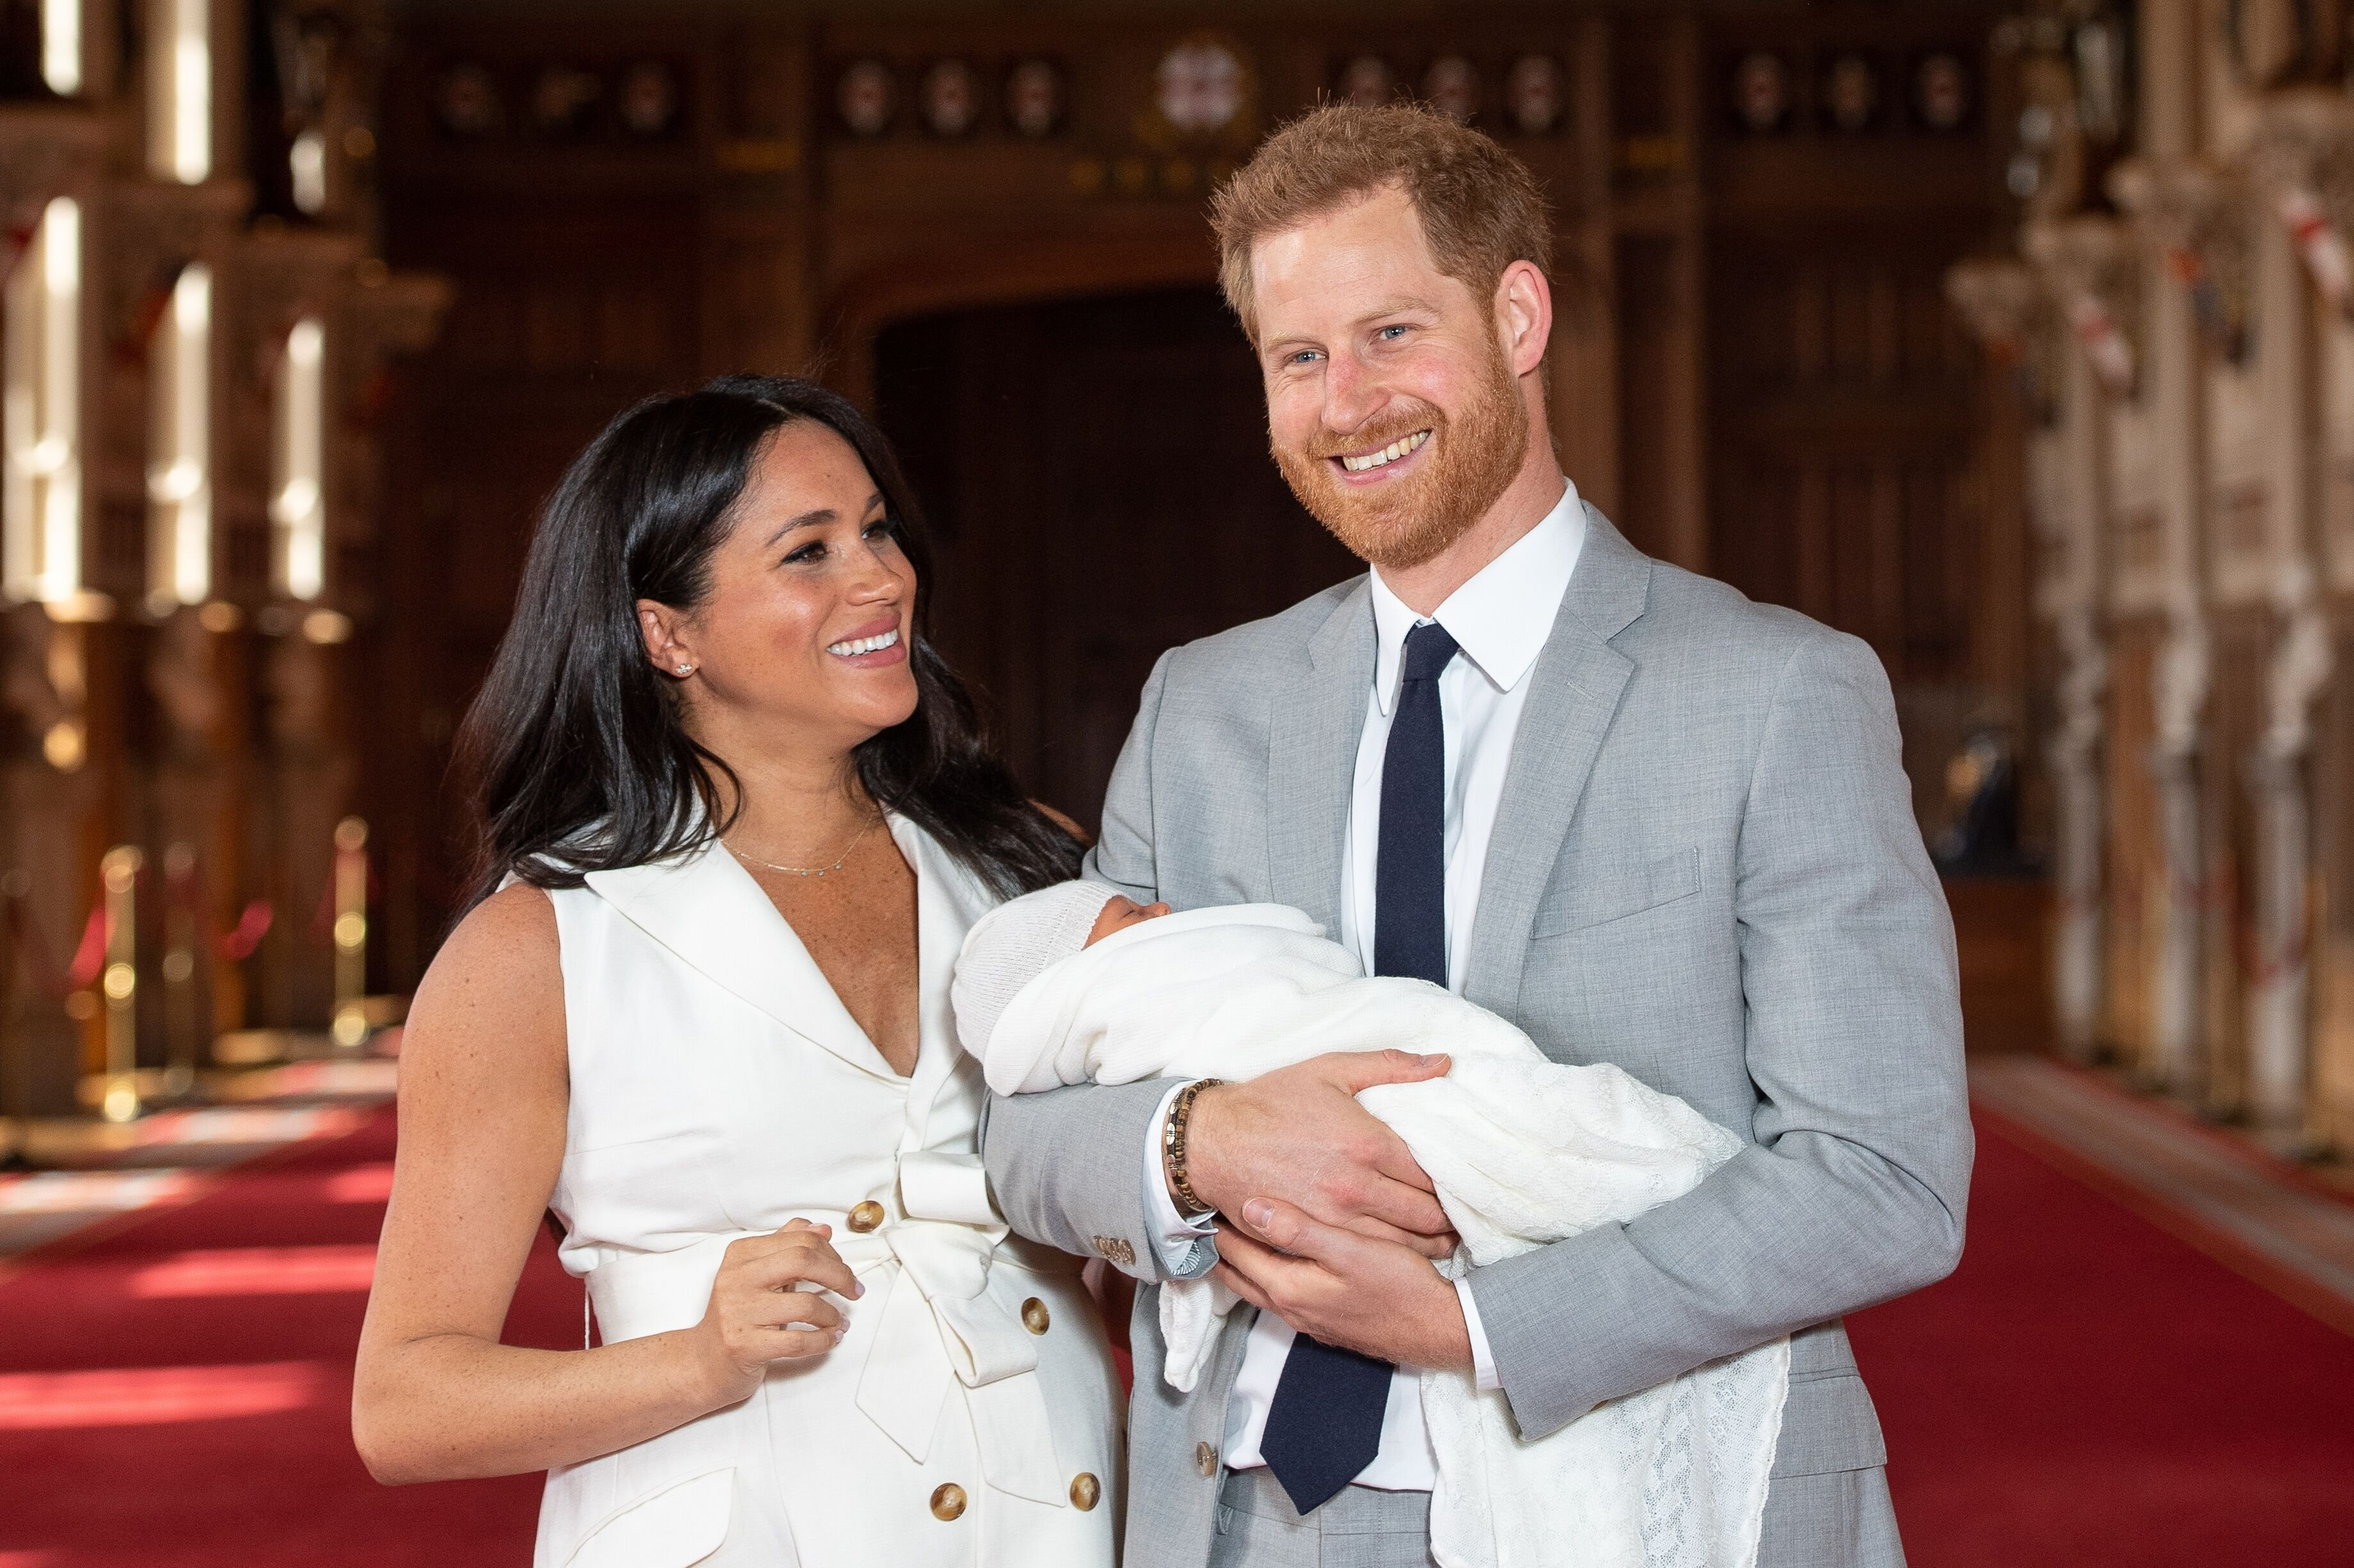 Meghan Markle et le prince Harry présentent le bébé Archie Harrison au St. George's Hall. | Source : Getty Images